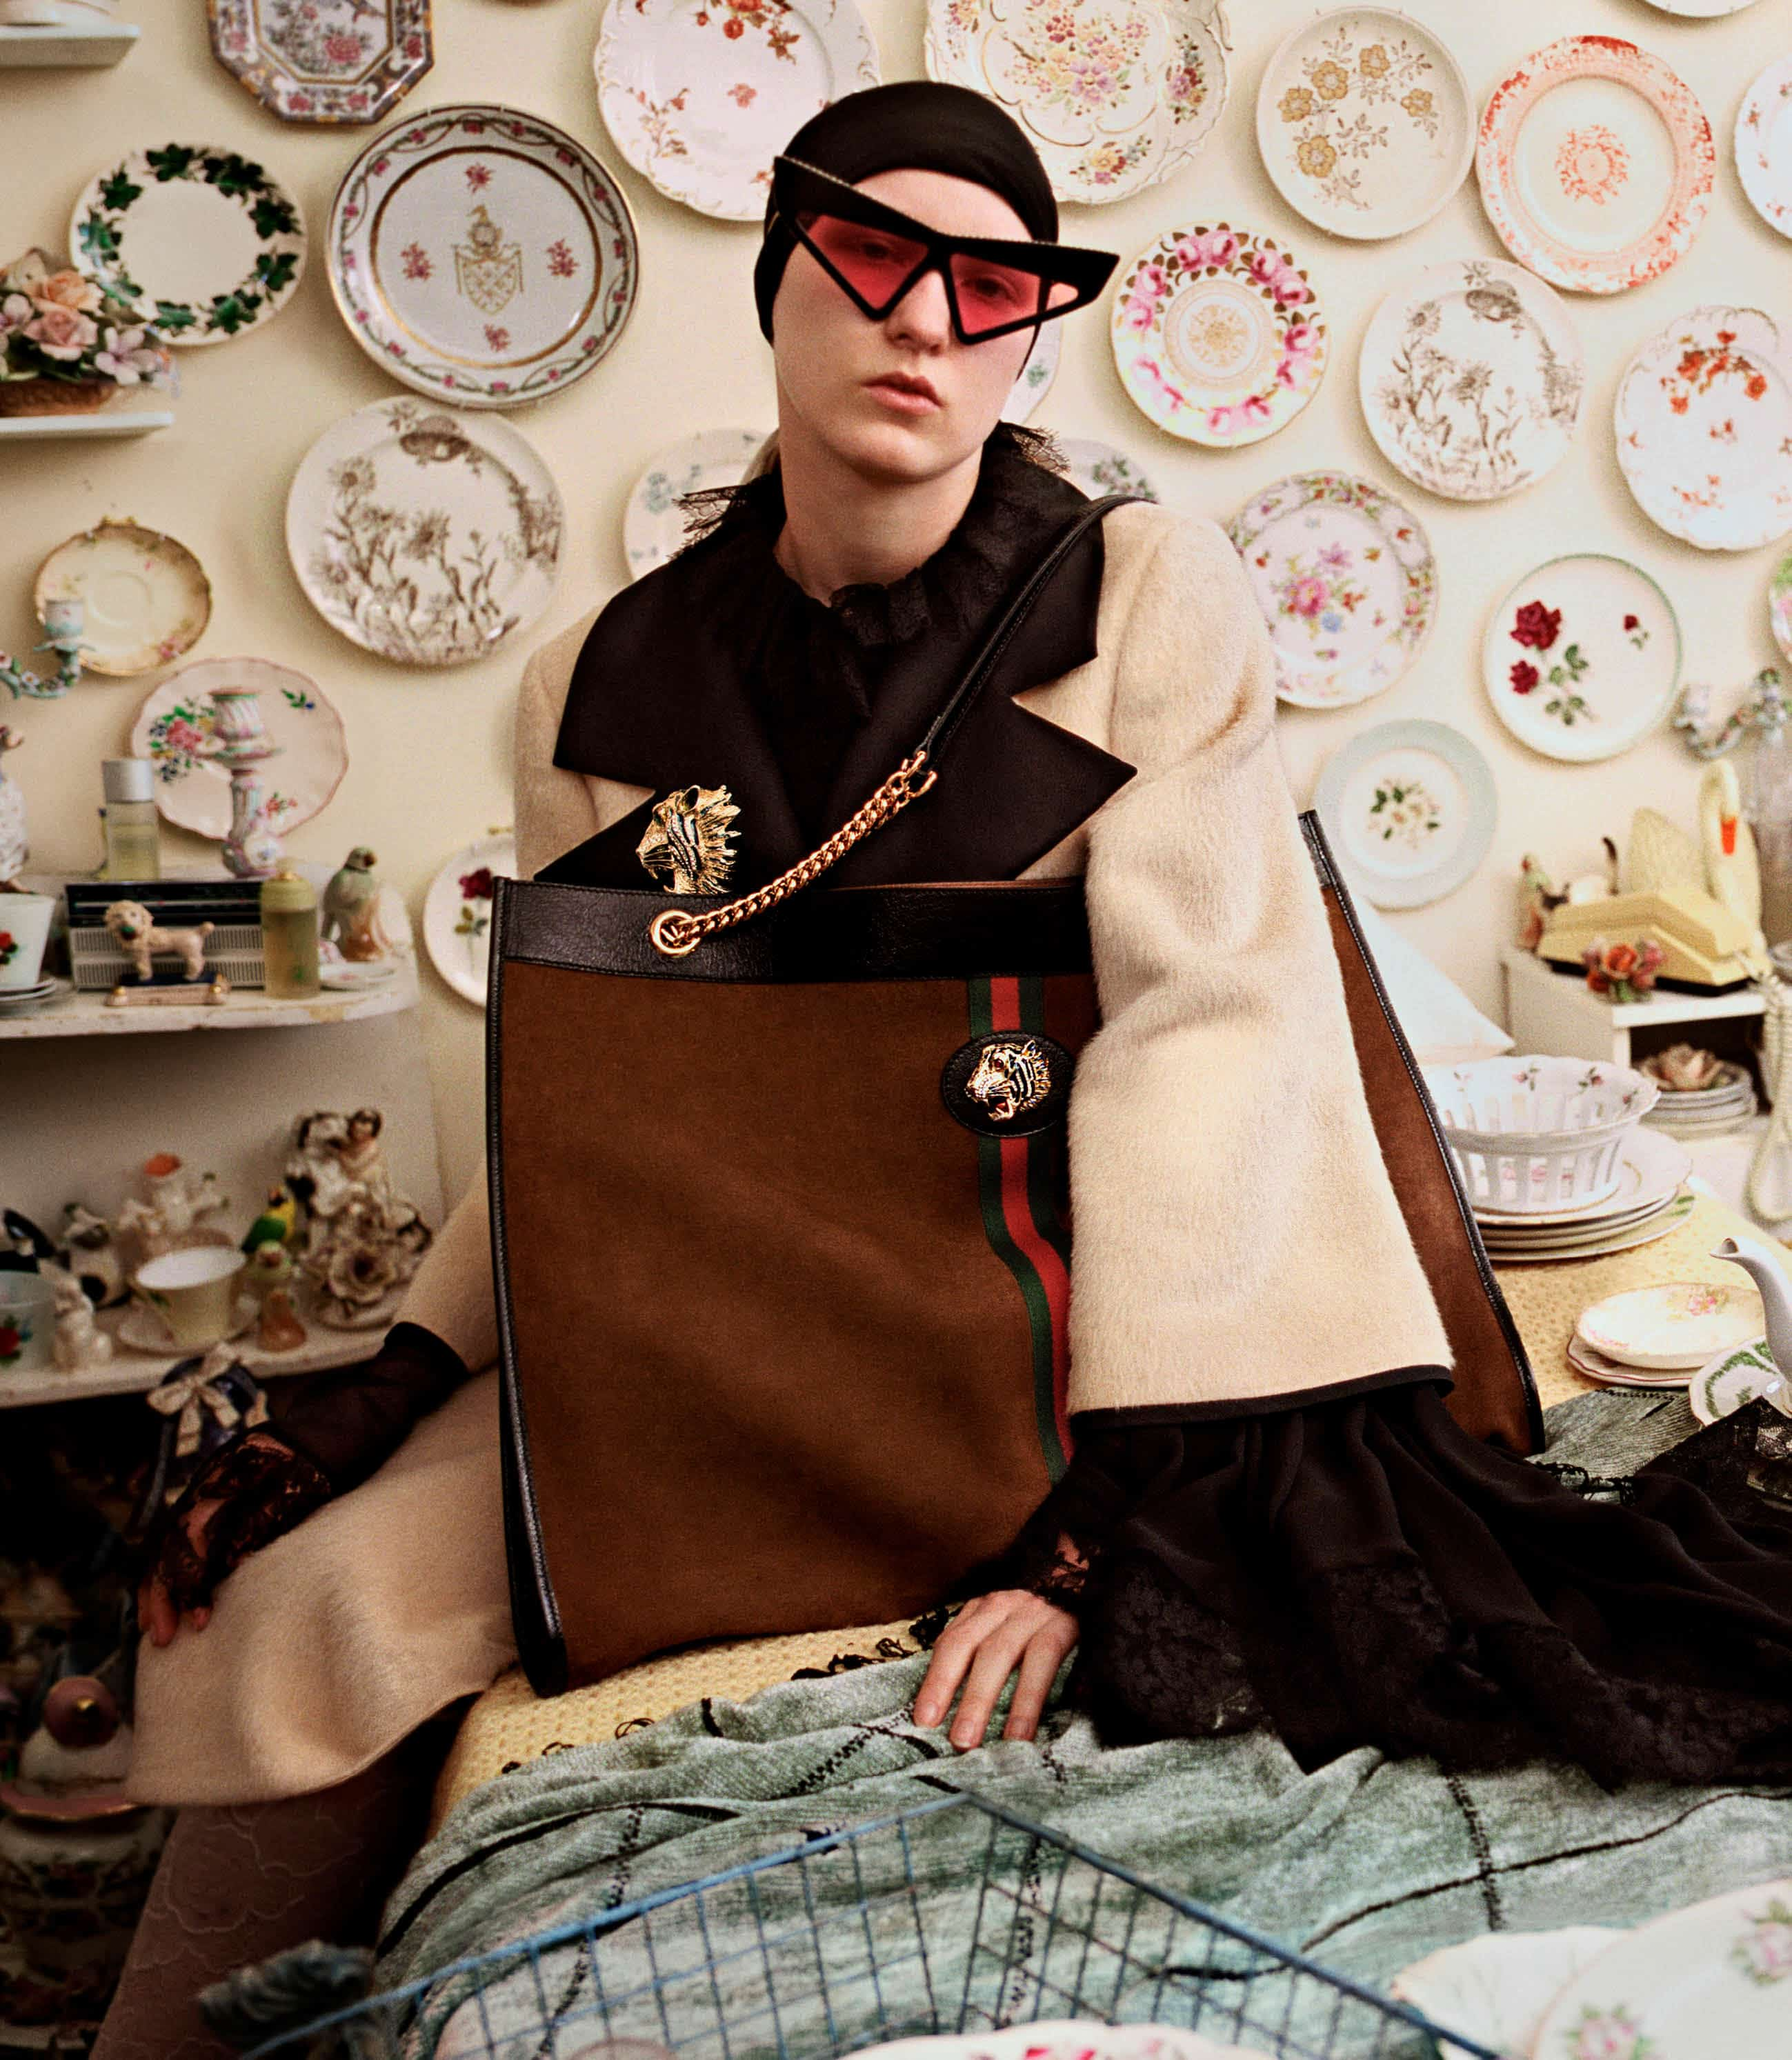 bd5a1ff01a0c There's a bit of India in Alessandro Michele's latest Rajah bag line for  Gucci